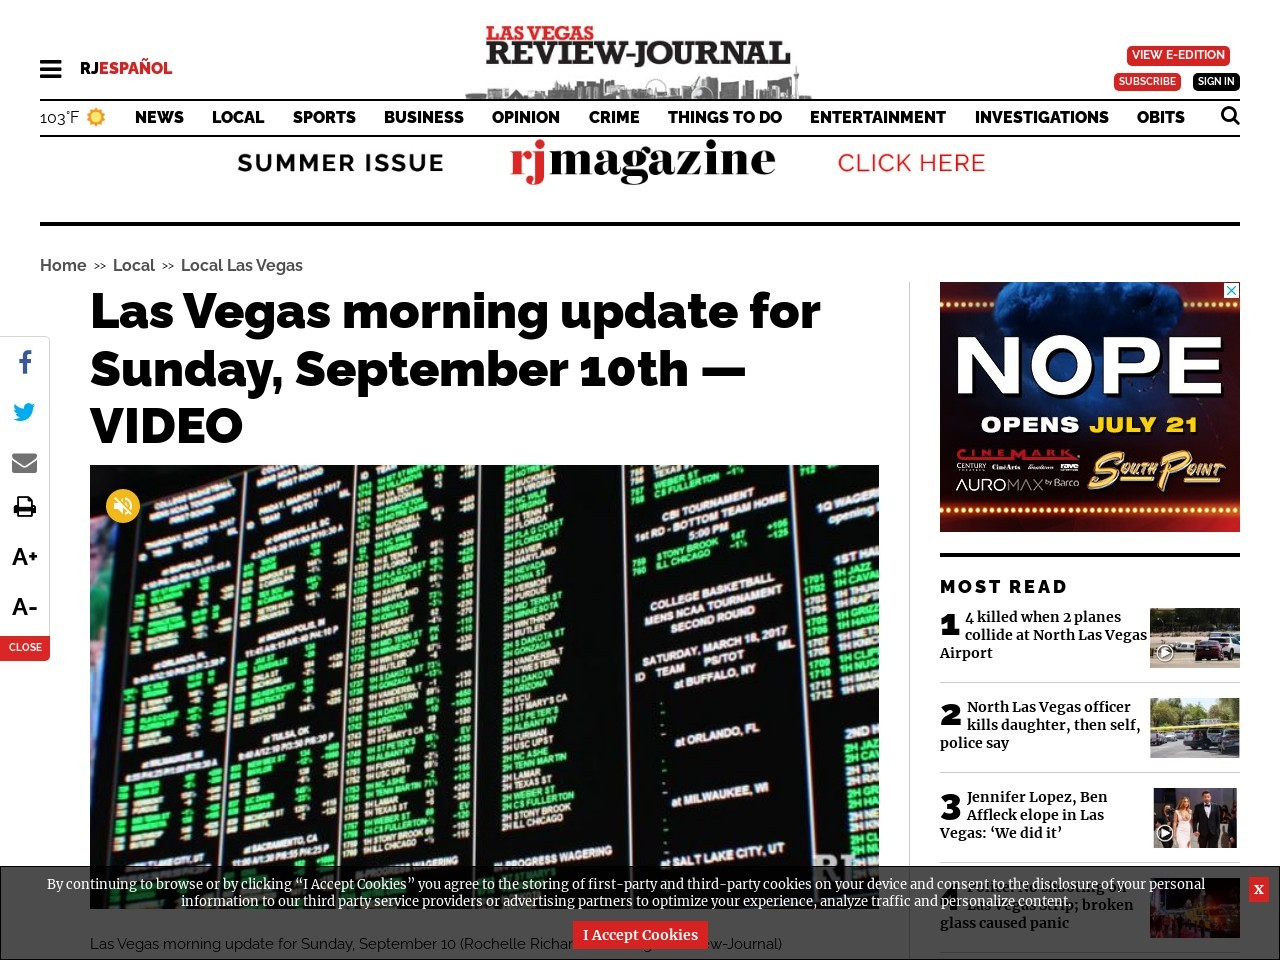 Las Vegas morning update for Sunday, September 10th — VIDEO